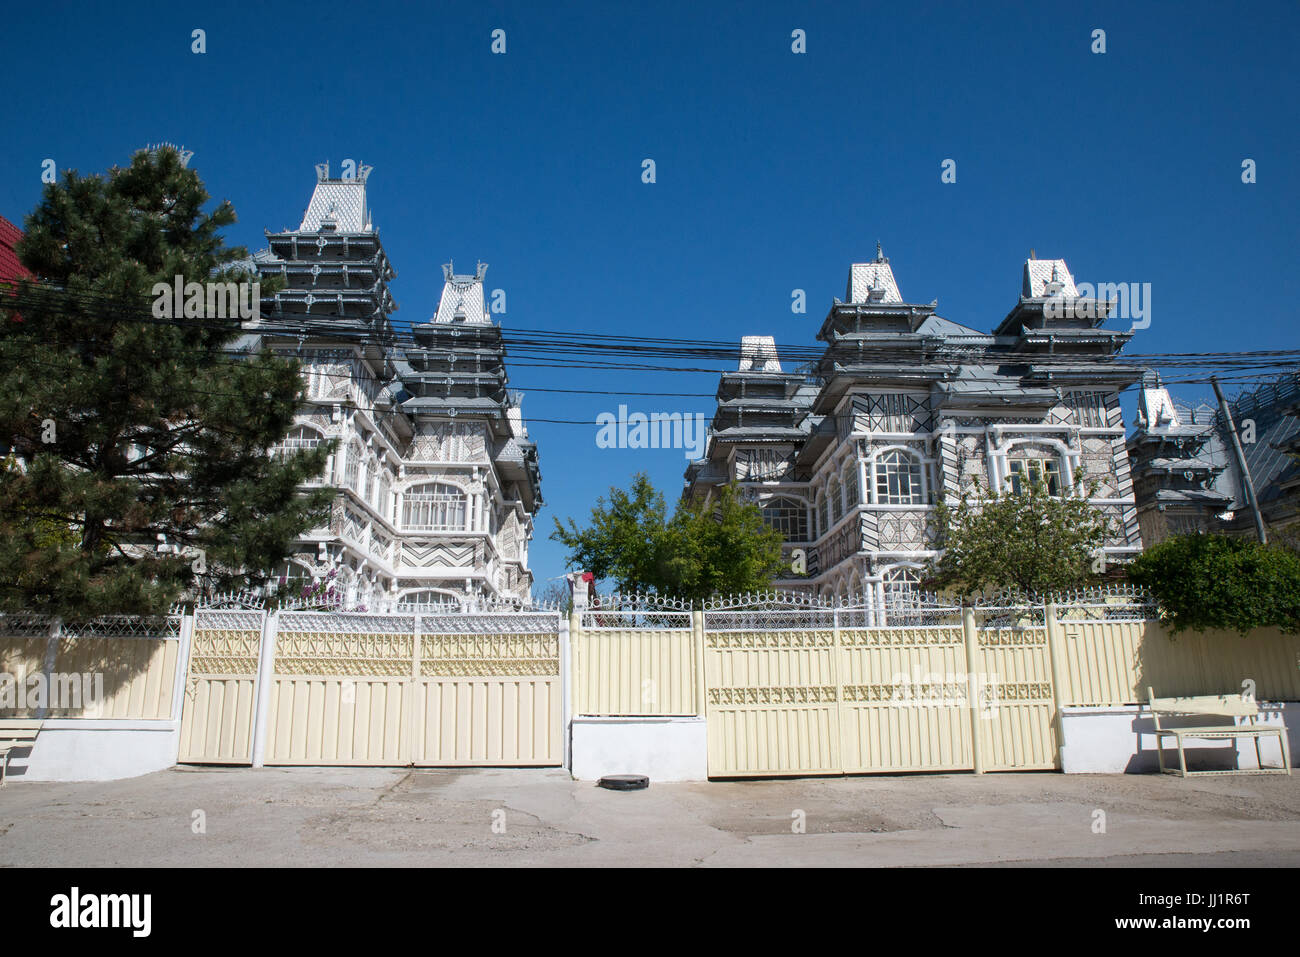 Wealthy house of a Roma gypsy family, Ivanesti, Romania - Stock Image